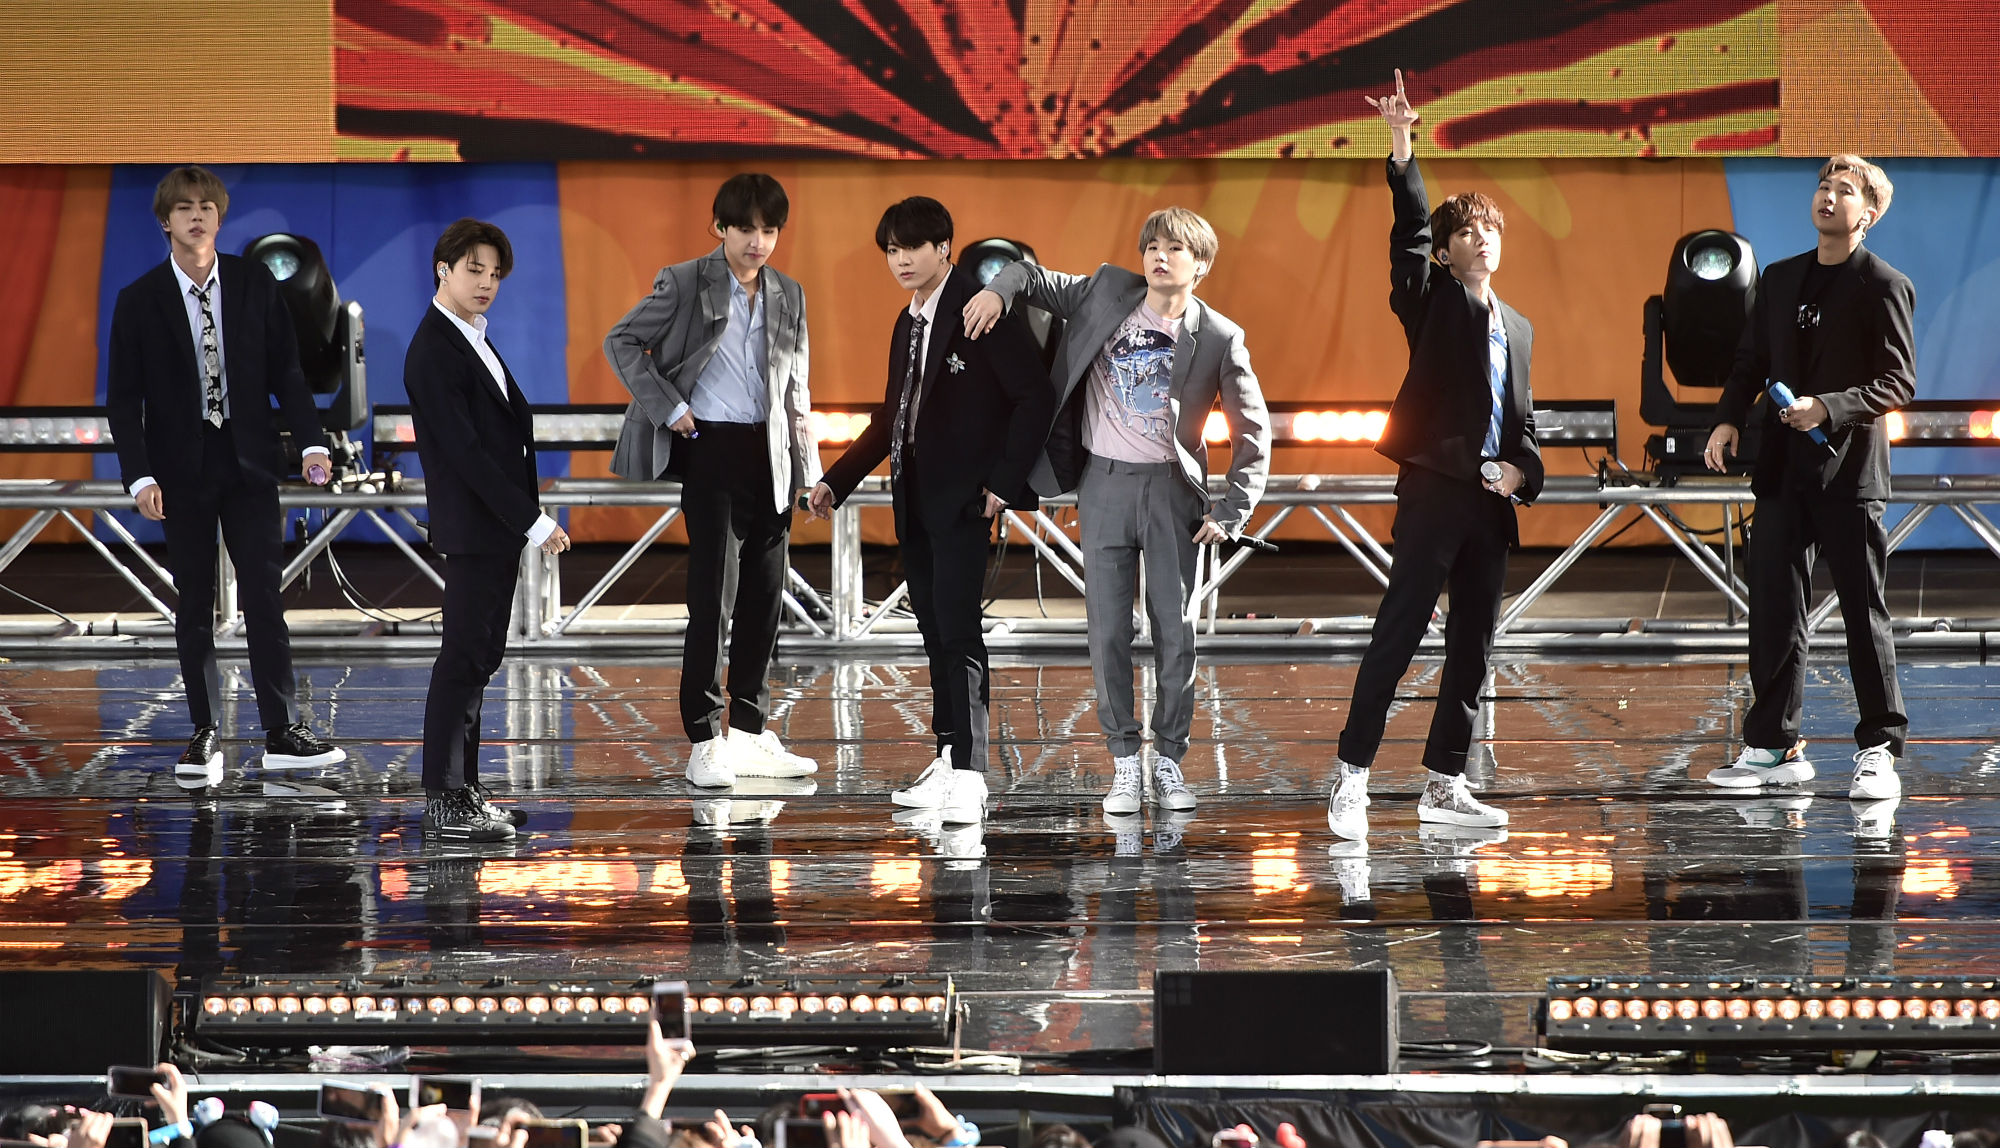 BTS to perform their 'Love Yourself: Speak Yourself' tour in